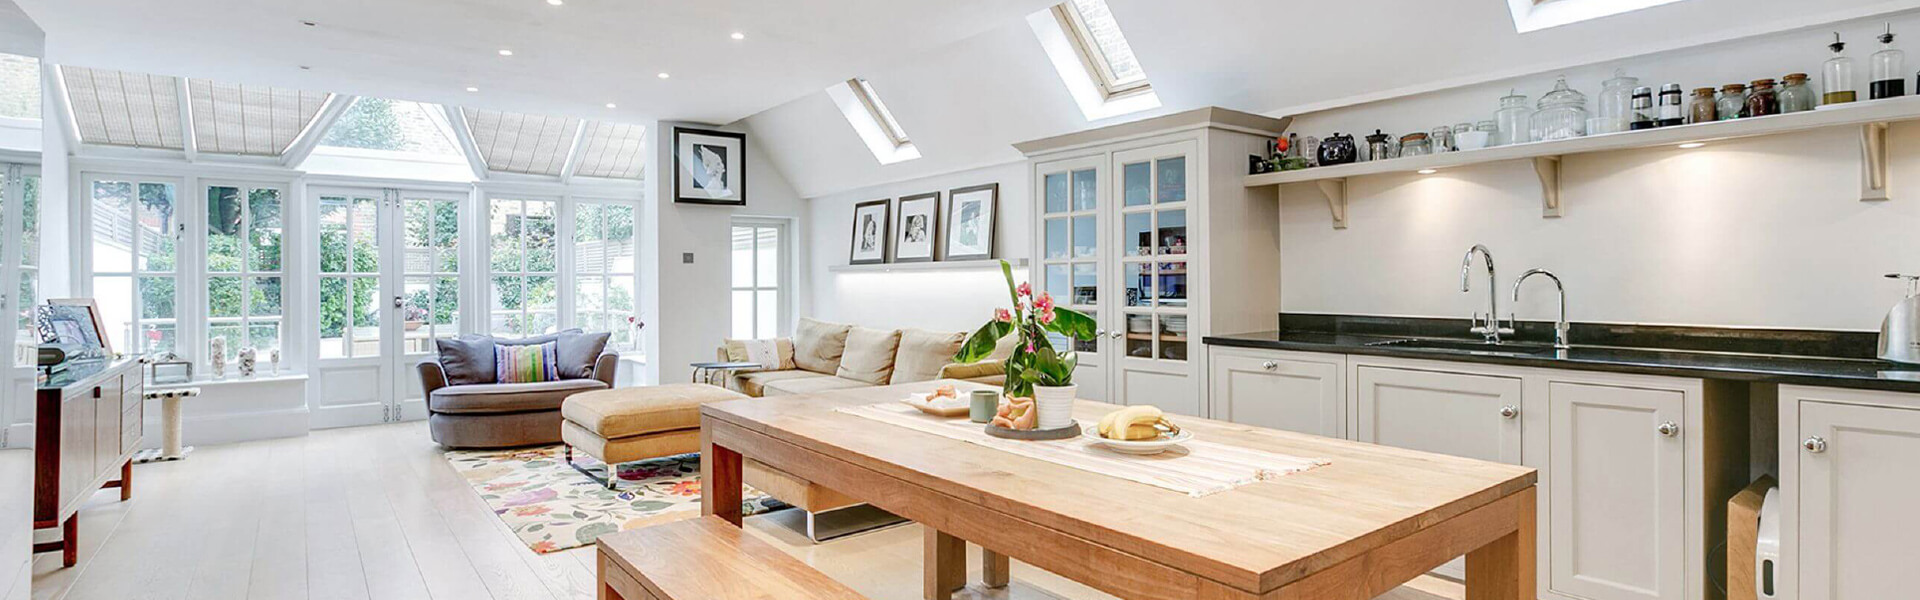 bright-and-airy-kitchen-perrymead-street